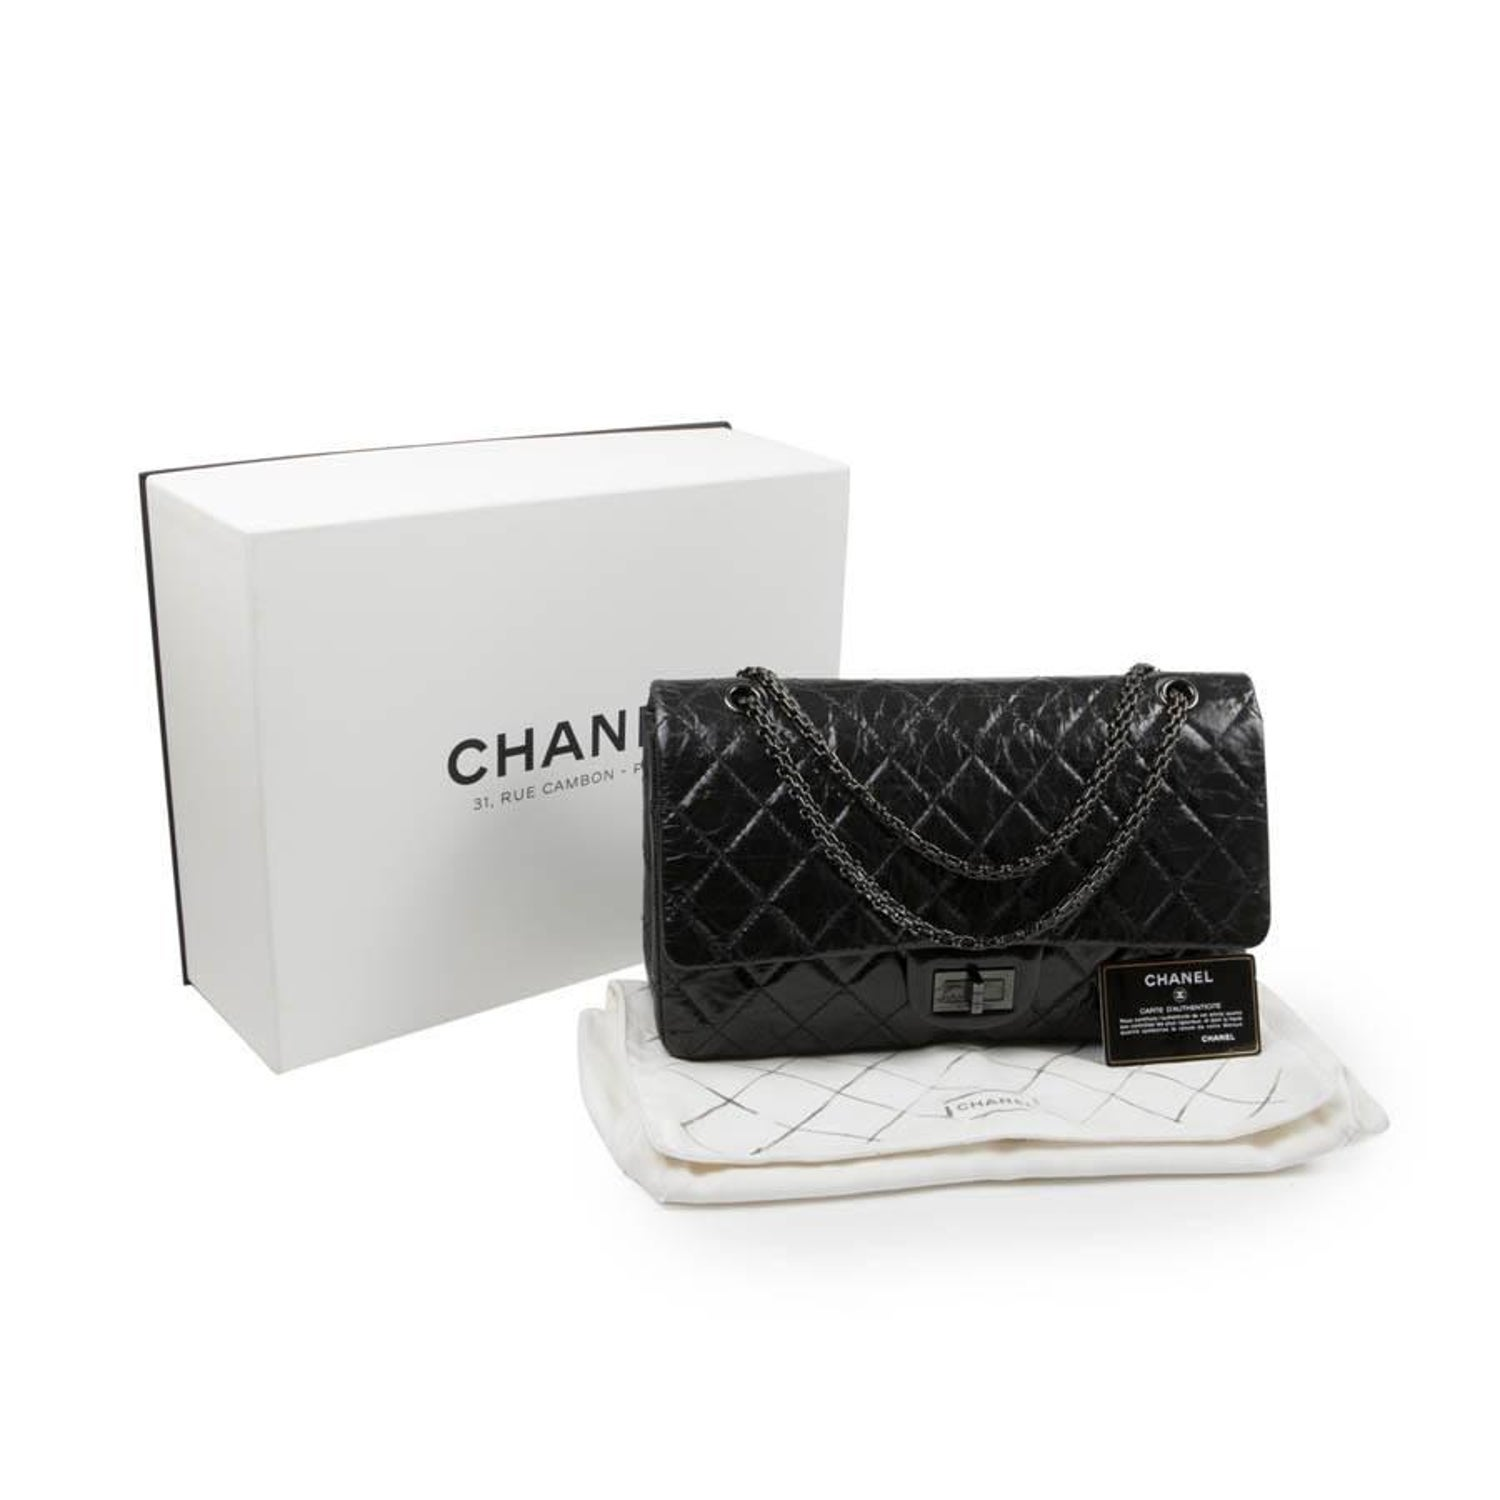 6fa333cbdacb CHANEL 2.55 Double Flap Bag in Shiny Black 'So Black' Leather For Sale at  1stdibs